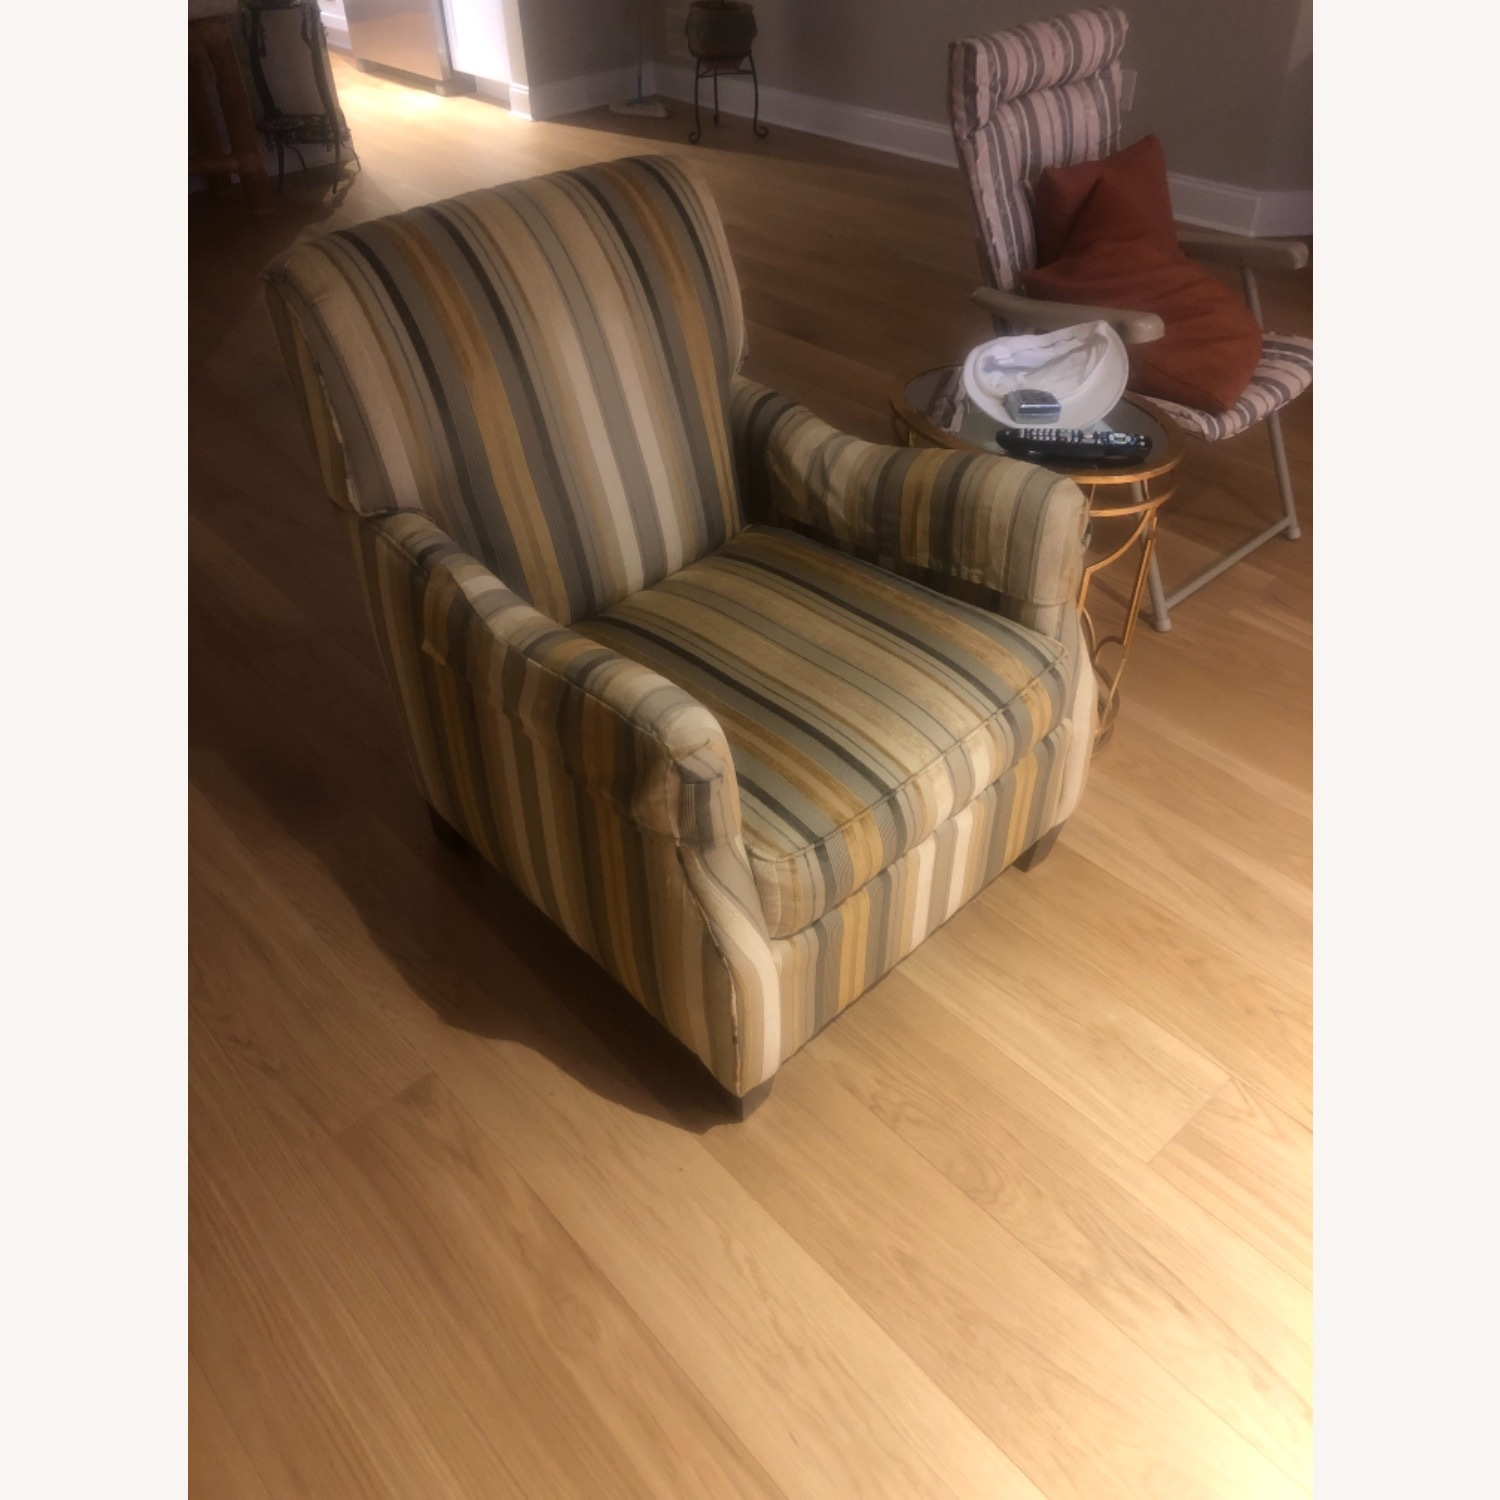 Dennis LennerVery Cushioned Comfortable Arm Chair - image-2